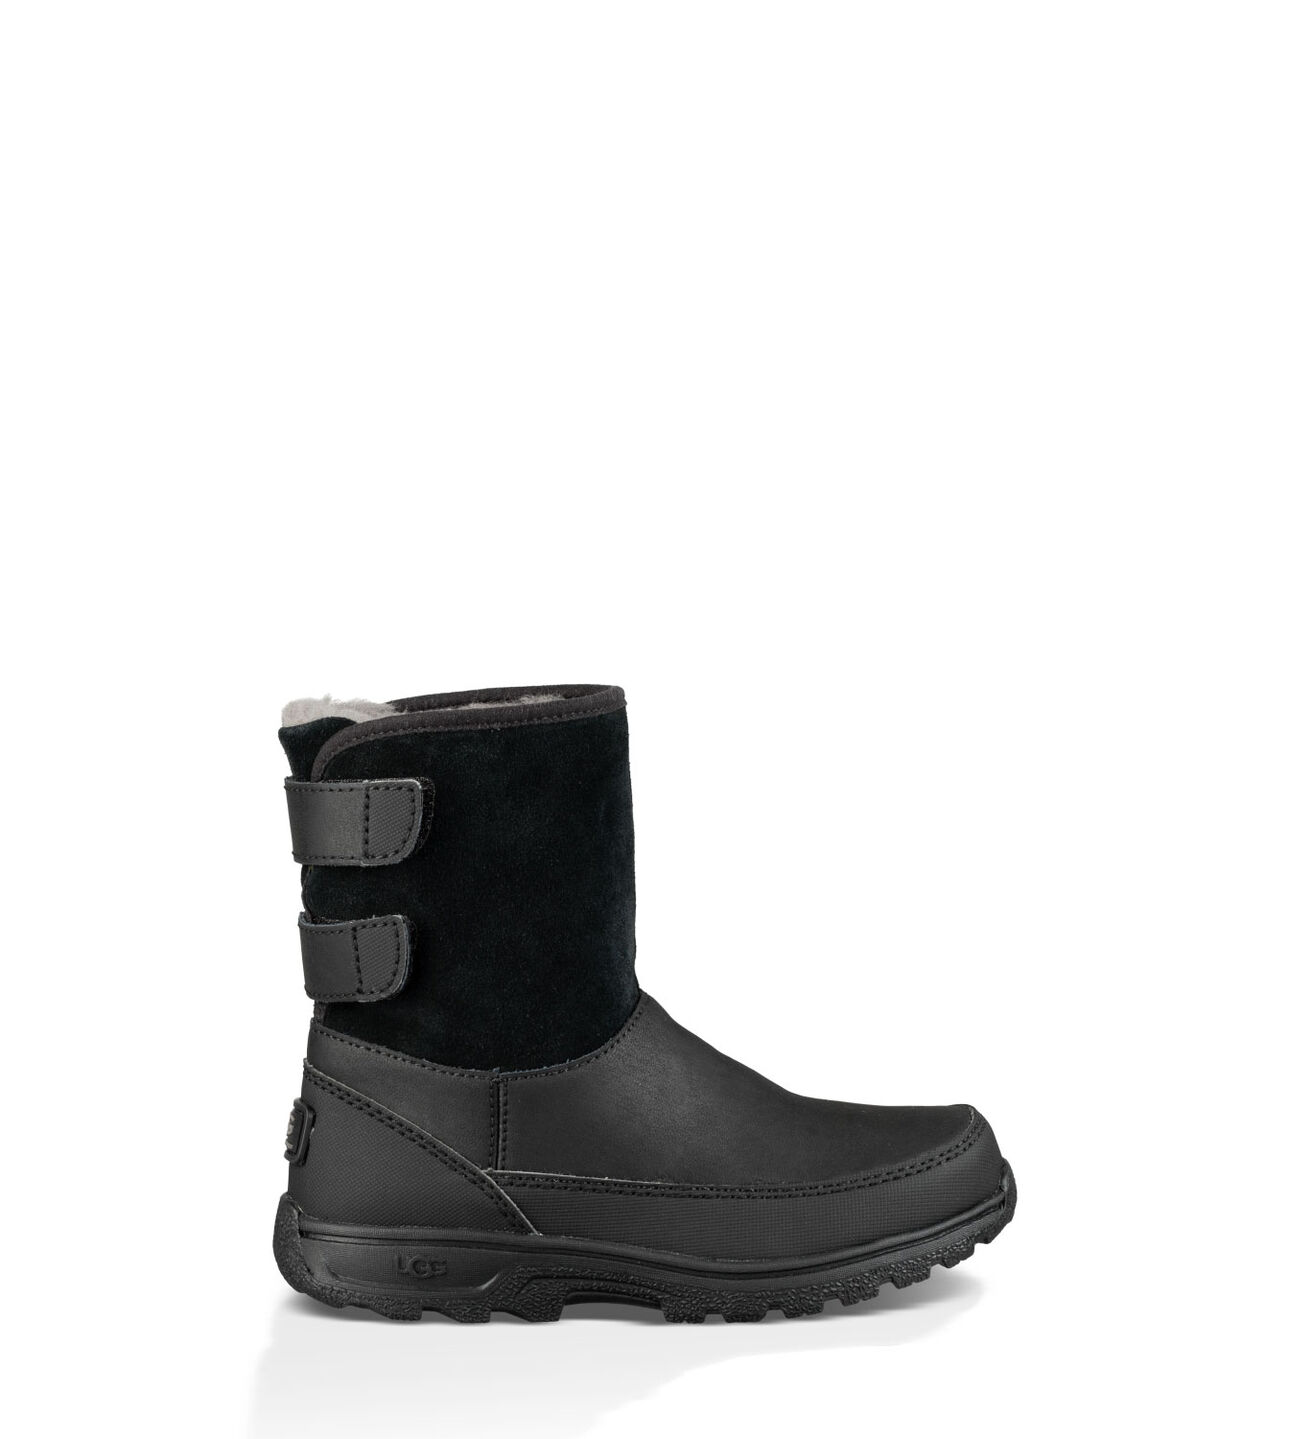 Boys' Clothing; Kid's Gifts; Girls' Clothing; Boots Men's Western Boots & Shoes; Ariat Men's Hybrid All-Weather WP Steel Toe Work Boots $ (2 Reviews) Look no further with Boot Barn's variety of steel toe boots and steel toe shoes. You need to protect your feet from all sorts of hazards in your work space.